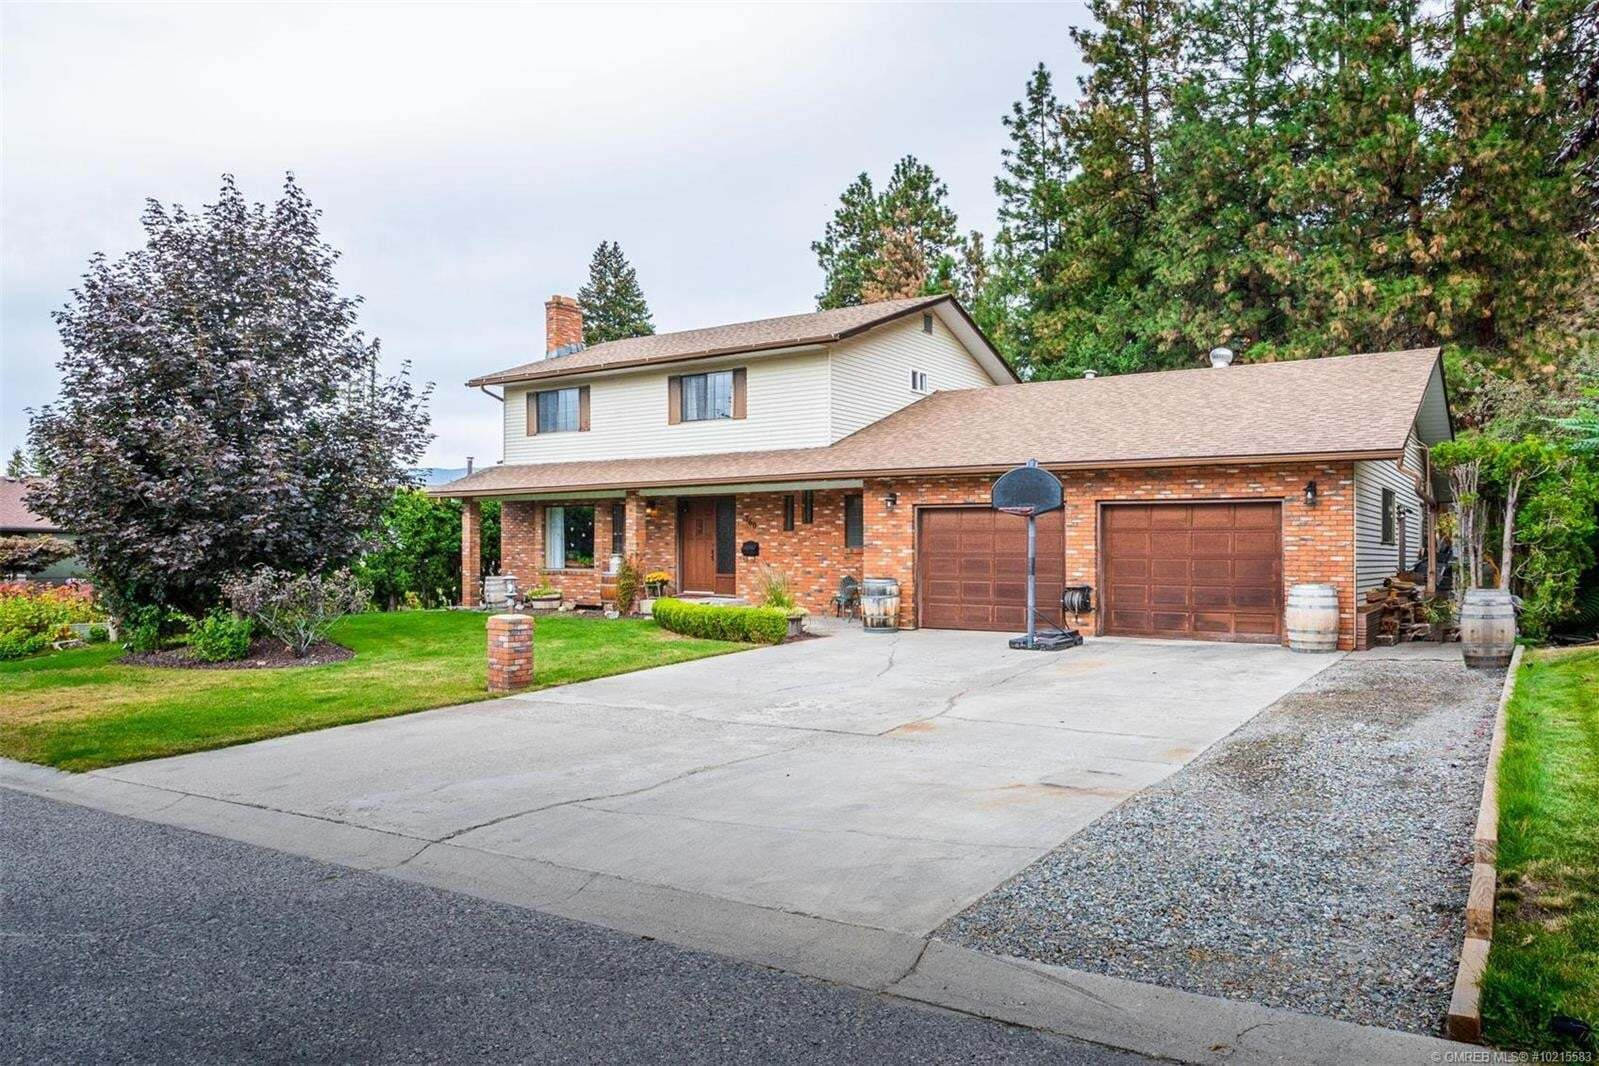 House for sale at 760 Schafer Rd Kelowna British Columbia - MLS: 10215583